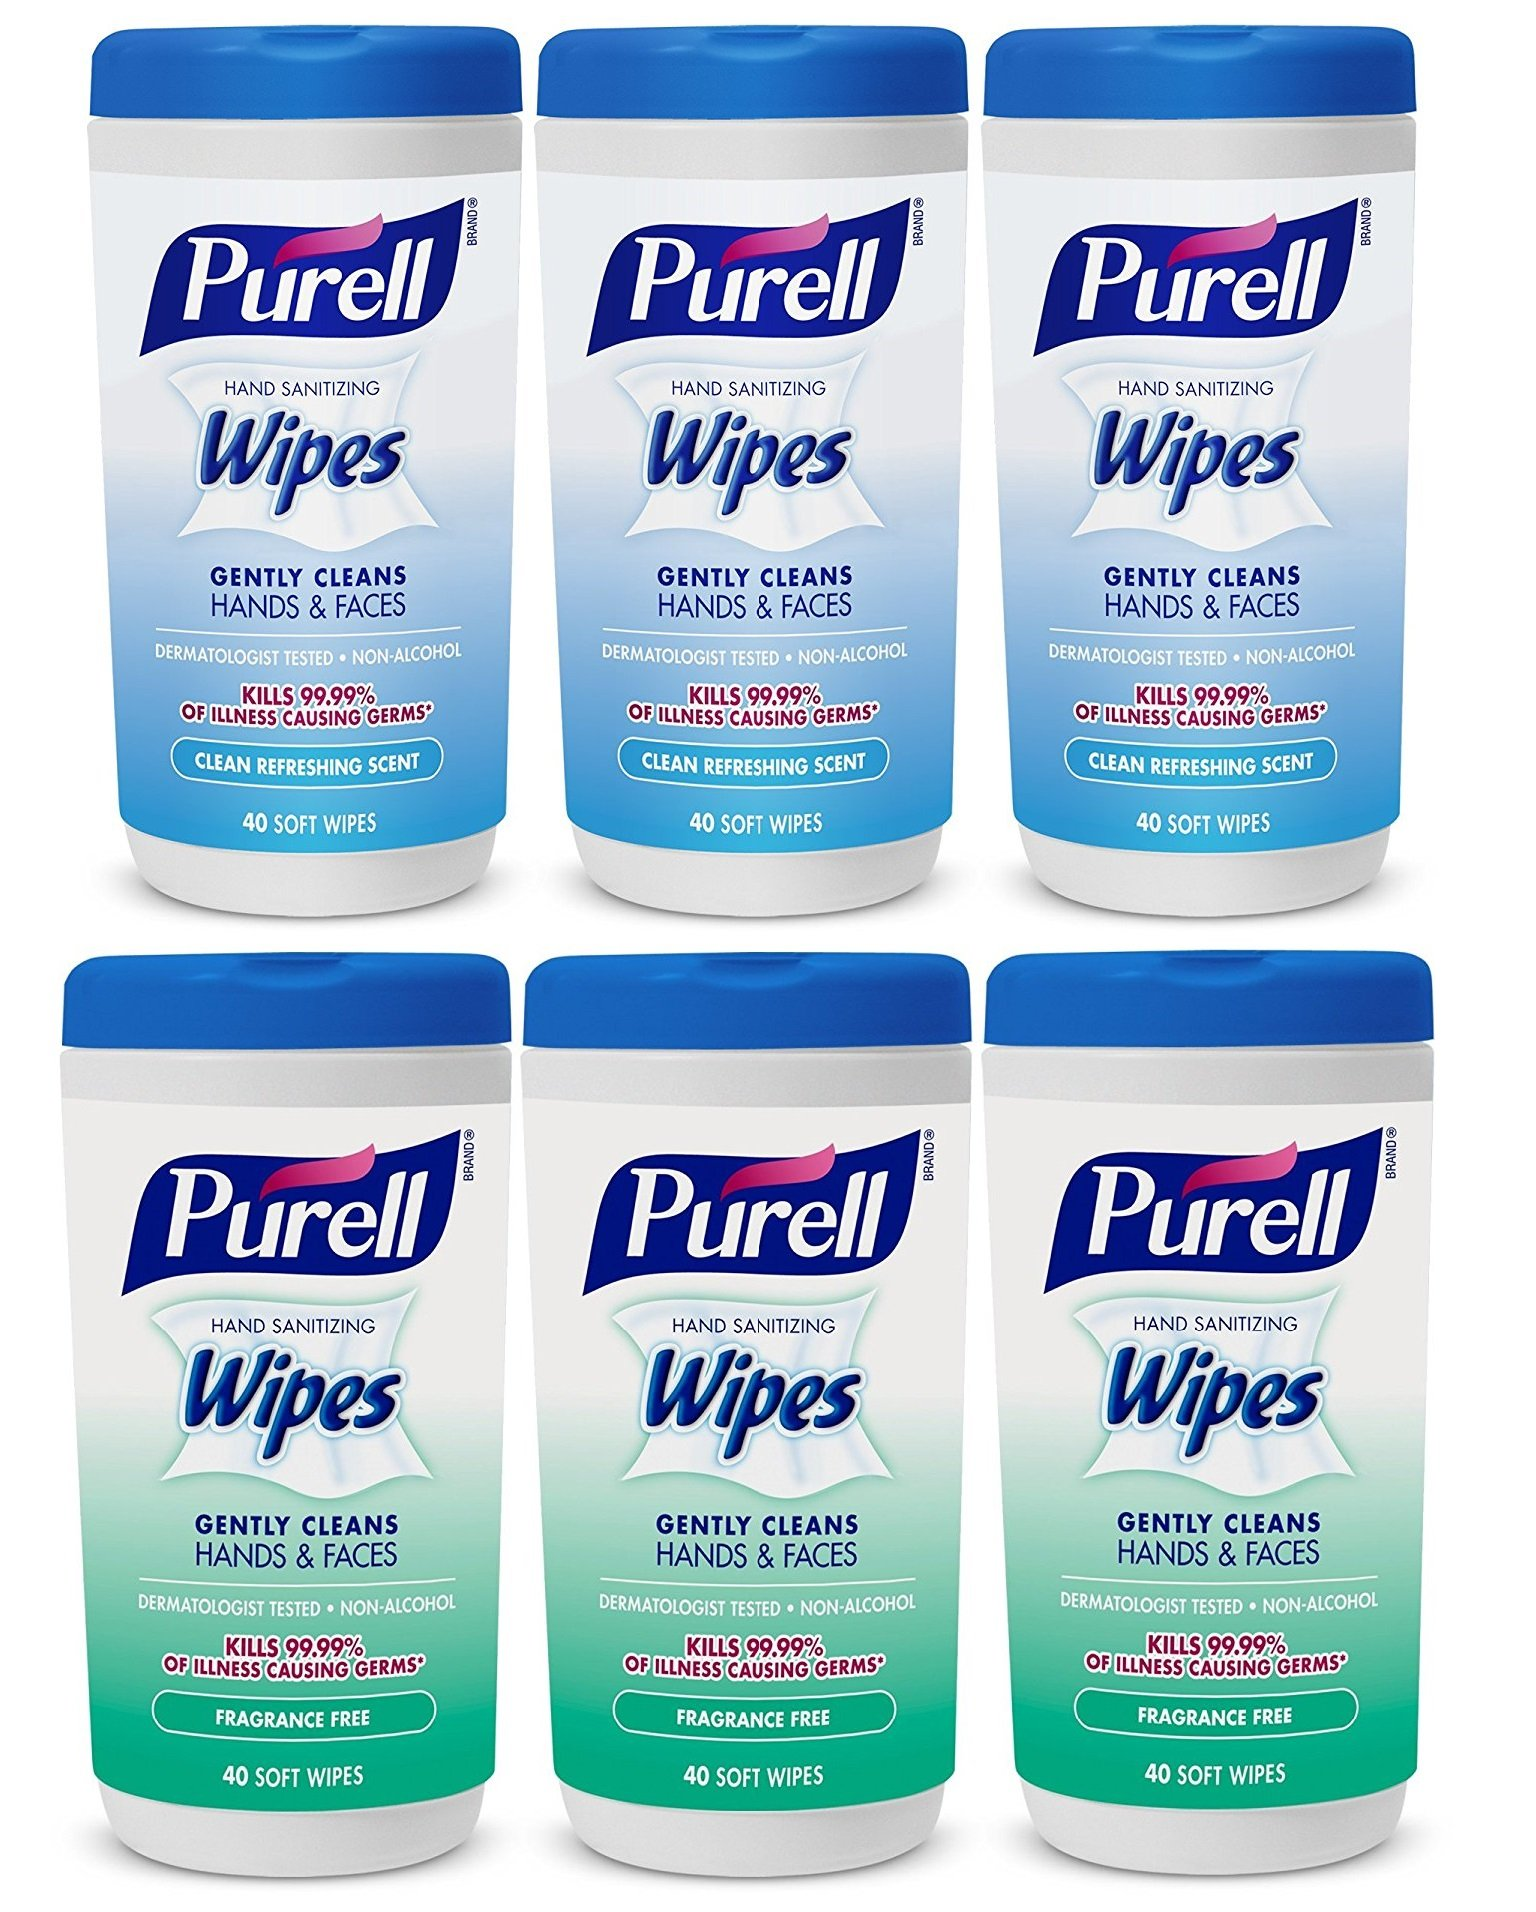 Hand and Face Sanitizing Wipes -3 Refreshing Scent And 3 Fragrance Free Canisters of 40 Count